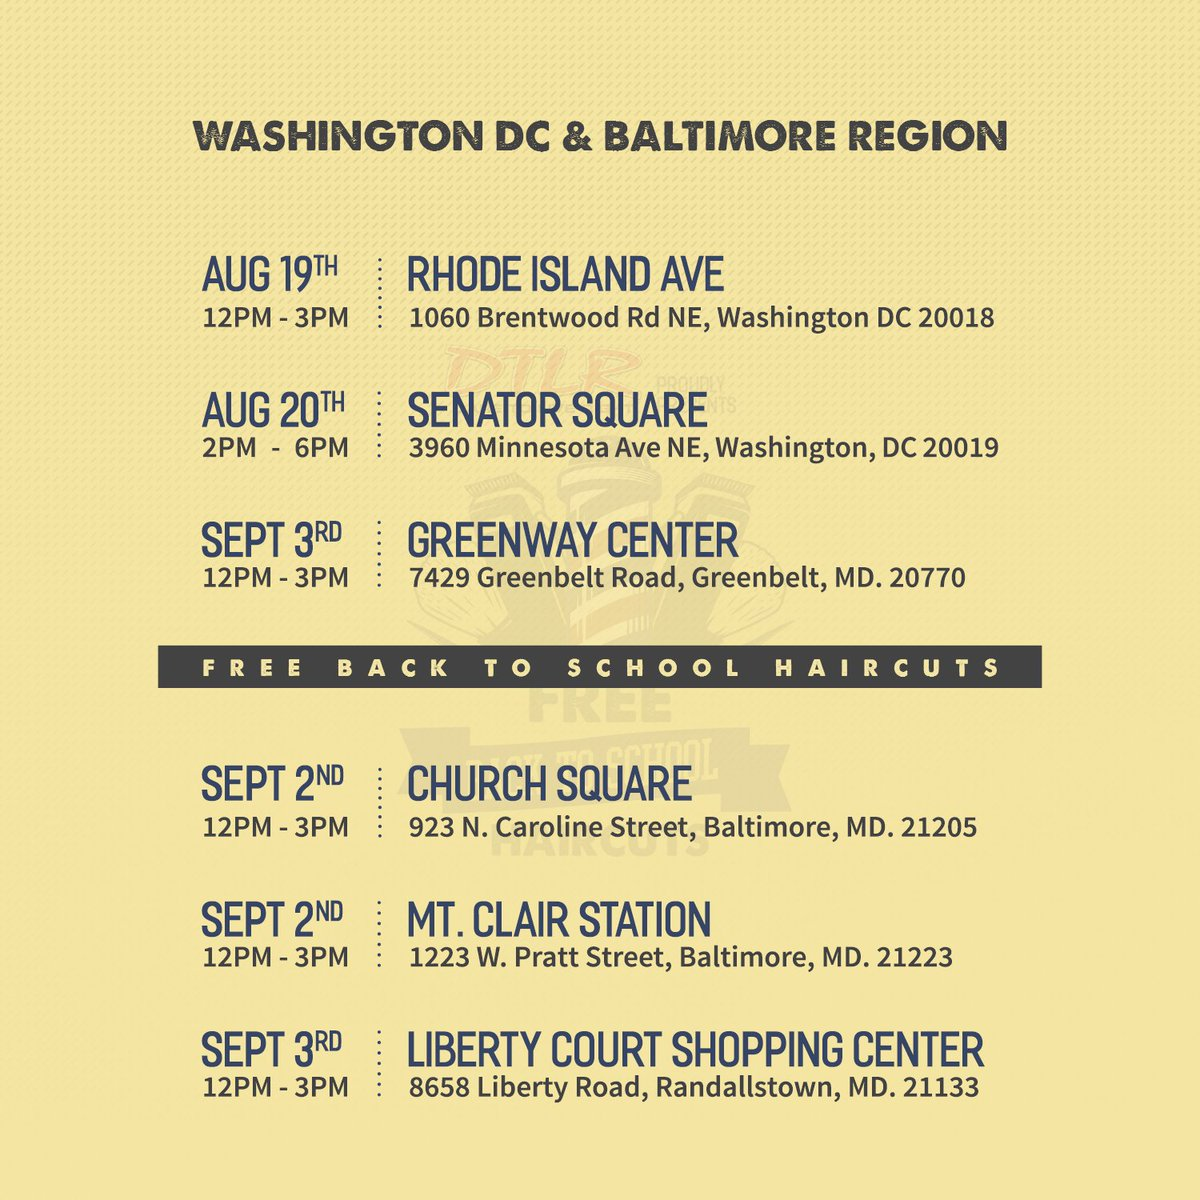 #DC & #MD Be sure to bring the kids by #DTLR for a #FREE haircut 6 Locations | 4 Dates #Daretoliveright #Back2School #Haircuts #Community https://t.co/y9wqCXRoWm